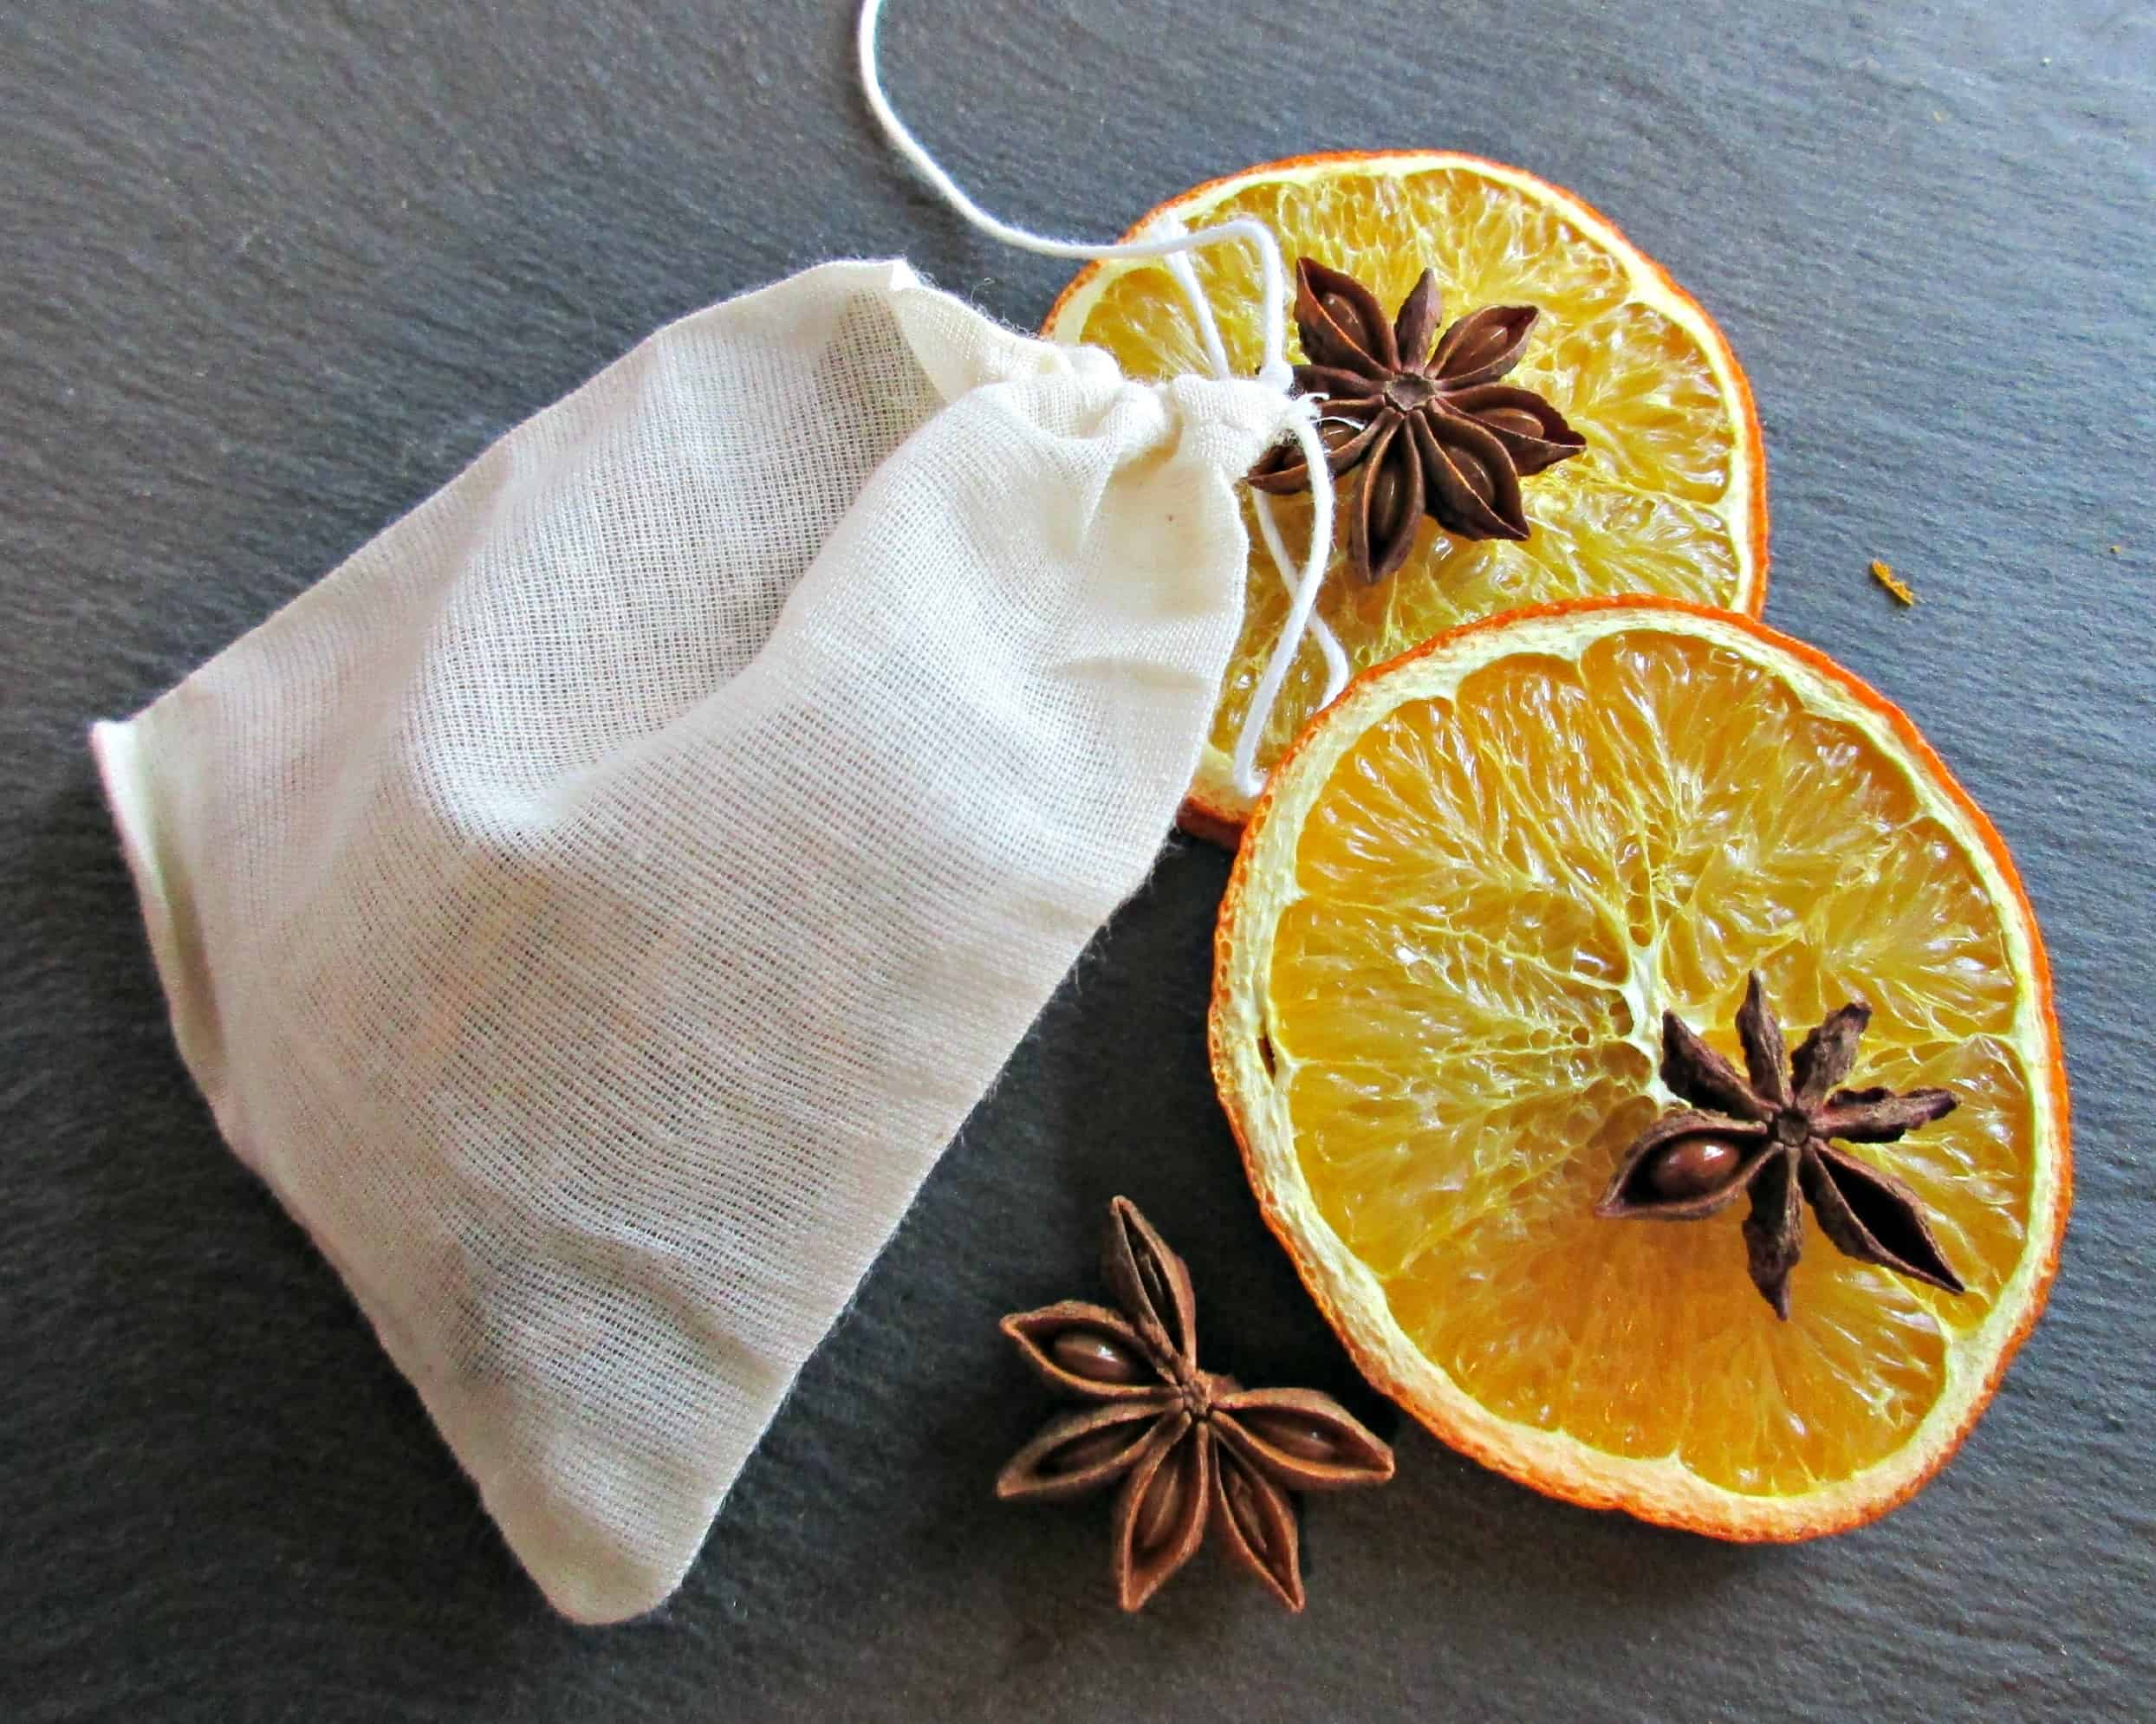 DIY Mulling Spice Bags make a lovely, thoughtful gift, and can be adapted to suit the taste of the recipient. Any edible, dry herbs, spices and flowers can be added; here we have gone for Warming Christmas flavours, but combinations such as Mint and Chamomile, or Rosehip and Orange are equally delightful. Post includes lovely apple juice recipe.